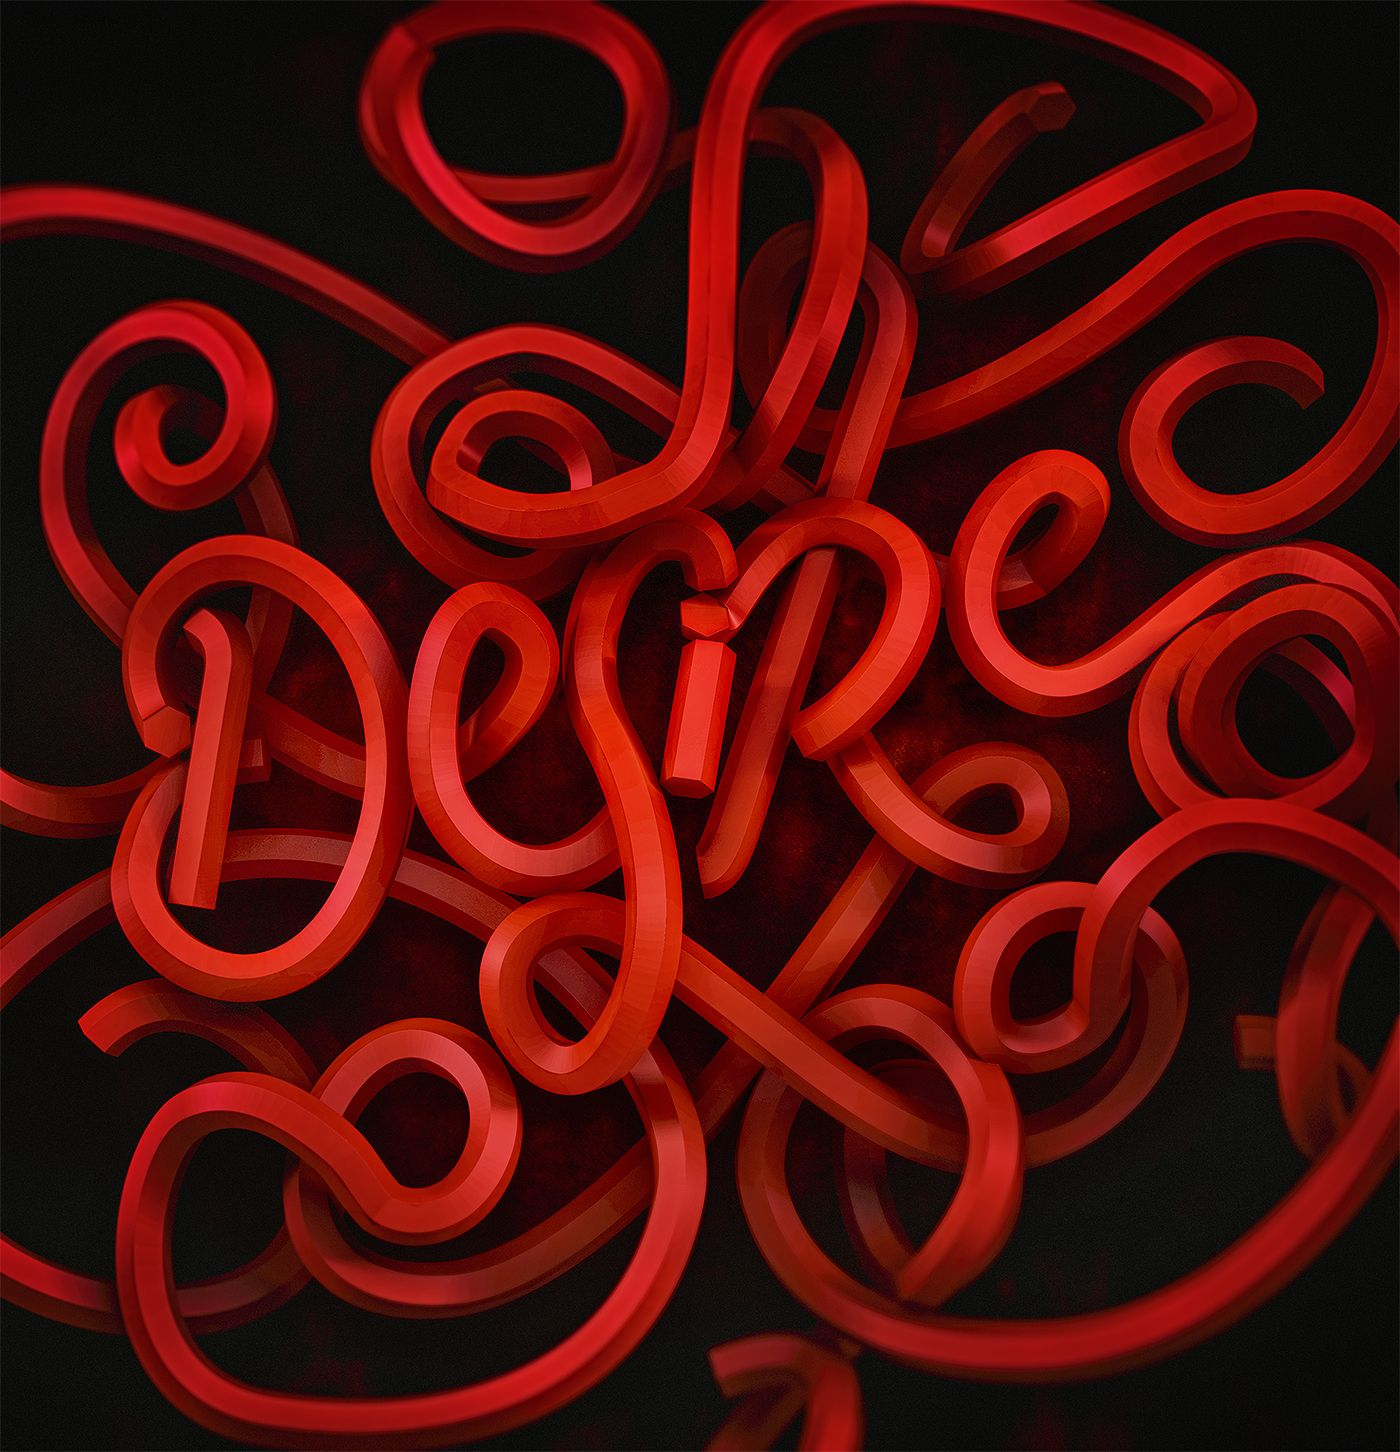 Desire Under Your Spell Some Custom Hand Lettering Experimentation Typography Artwork Typography Hand Lettering